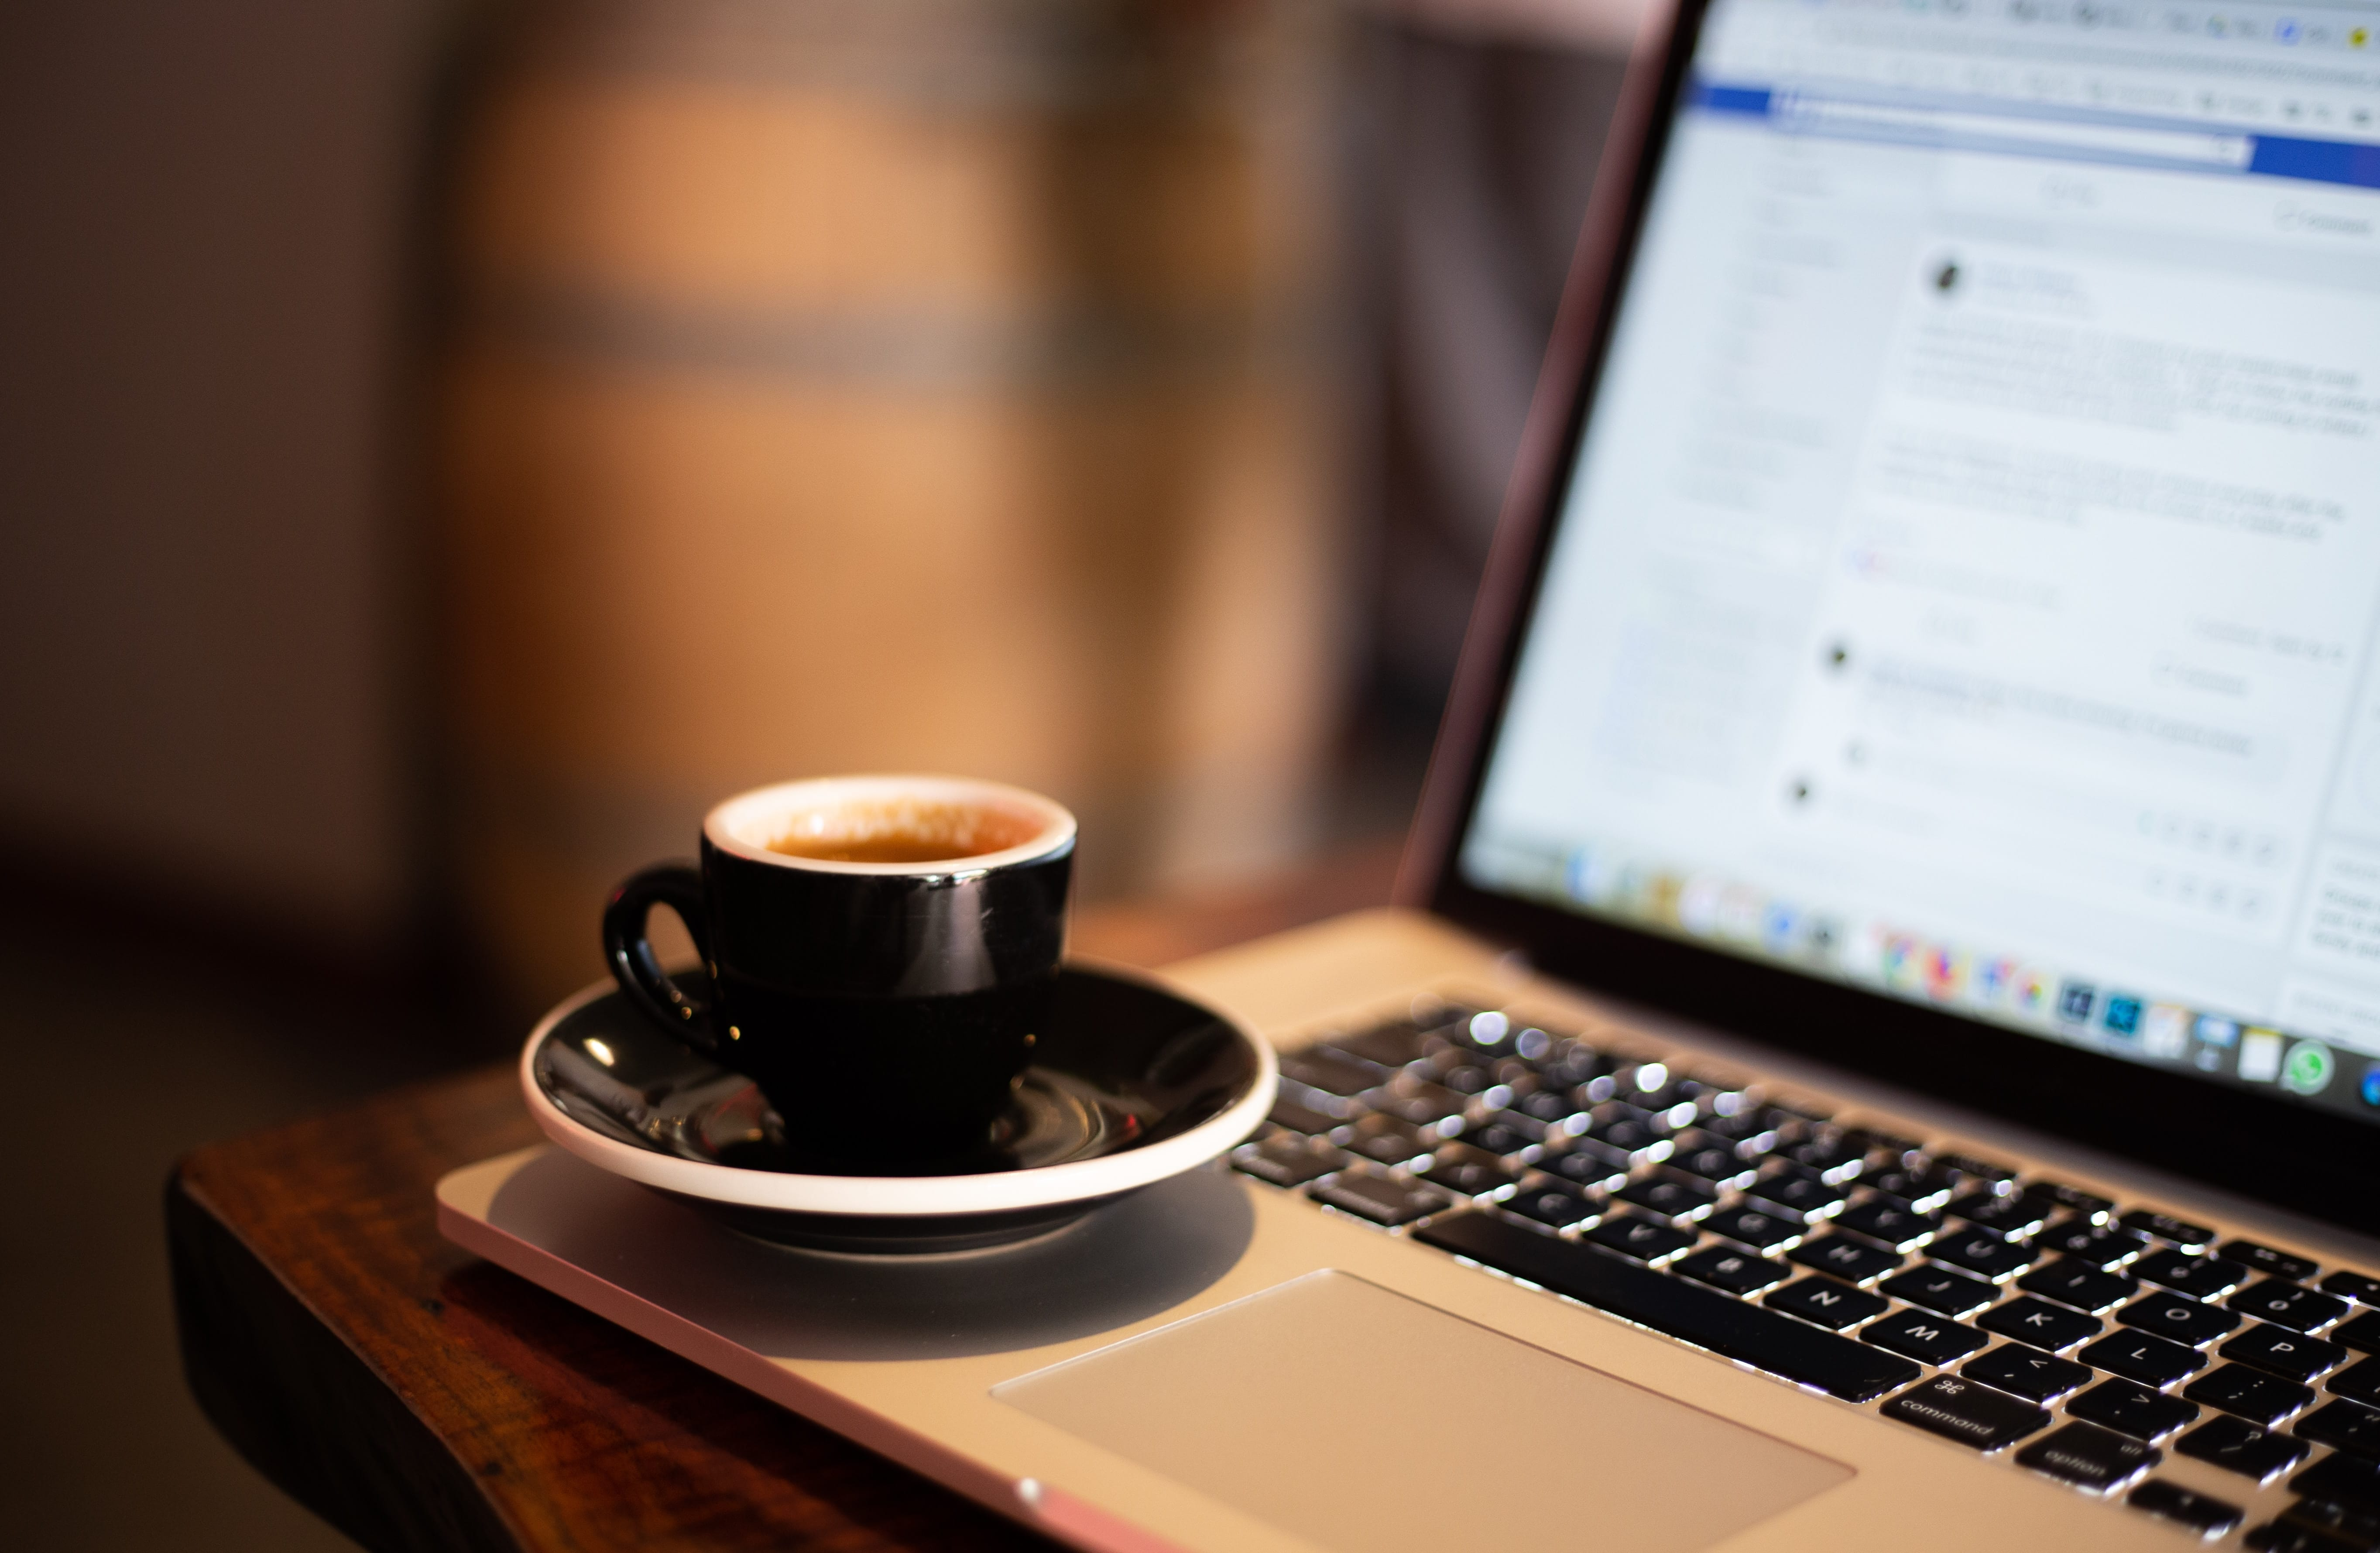 black coffee mug on laptop with facebook on screen